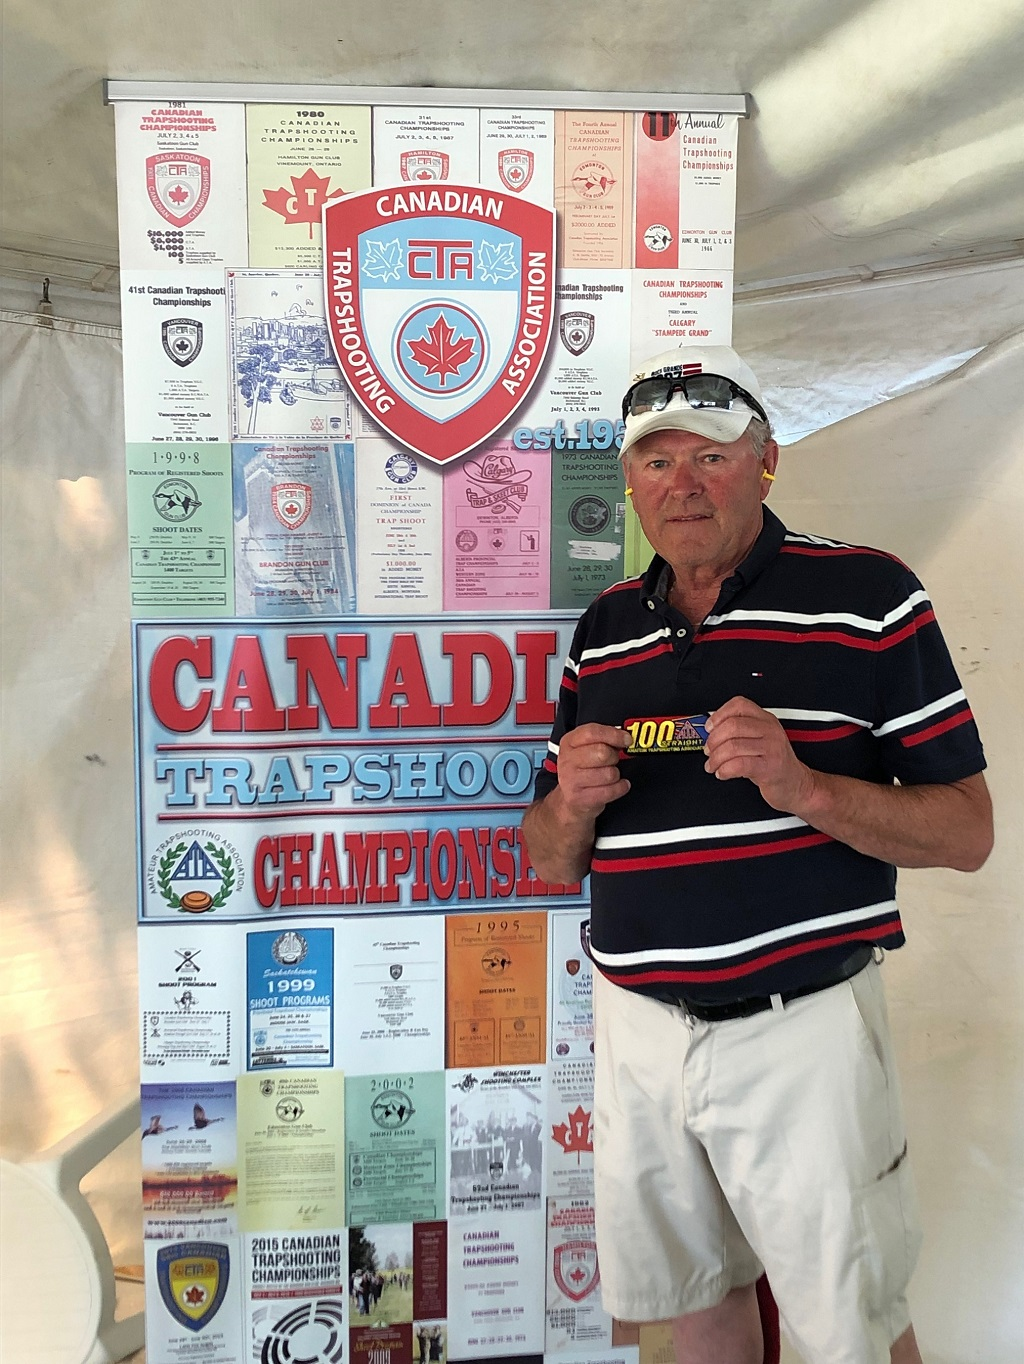 Reynold d'Entremont broke his first 100 straight at the 2019 Canadian Championships.